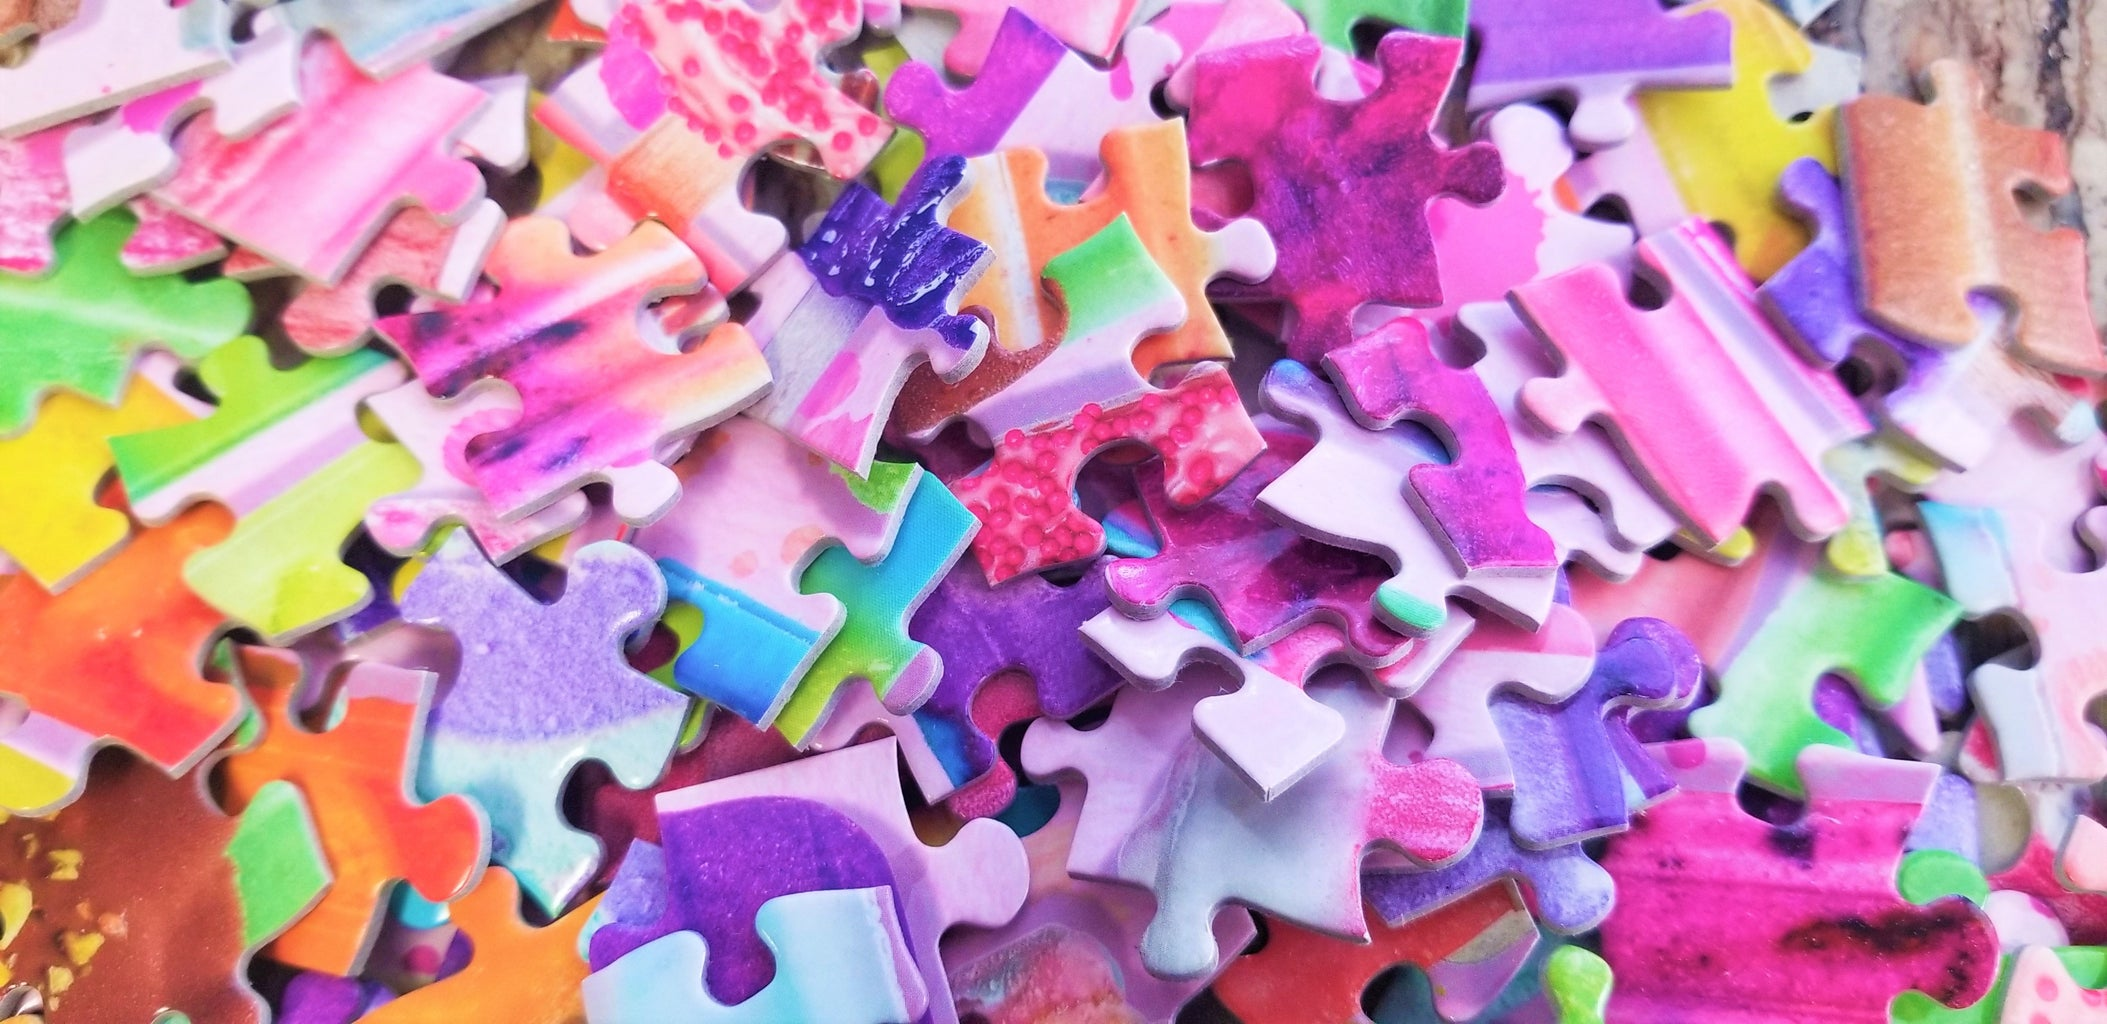 Tackling a Puzzle for the First-time